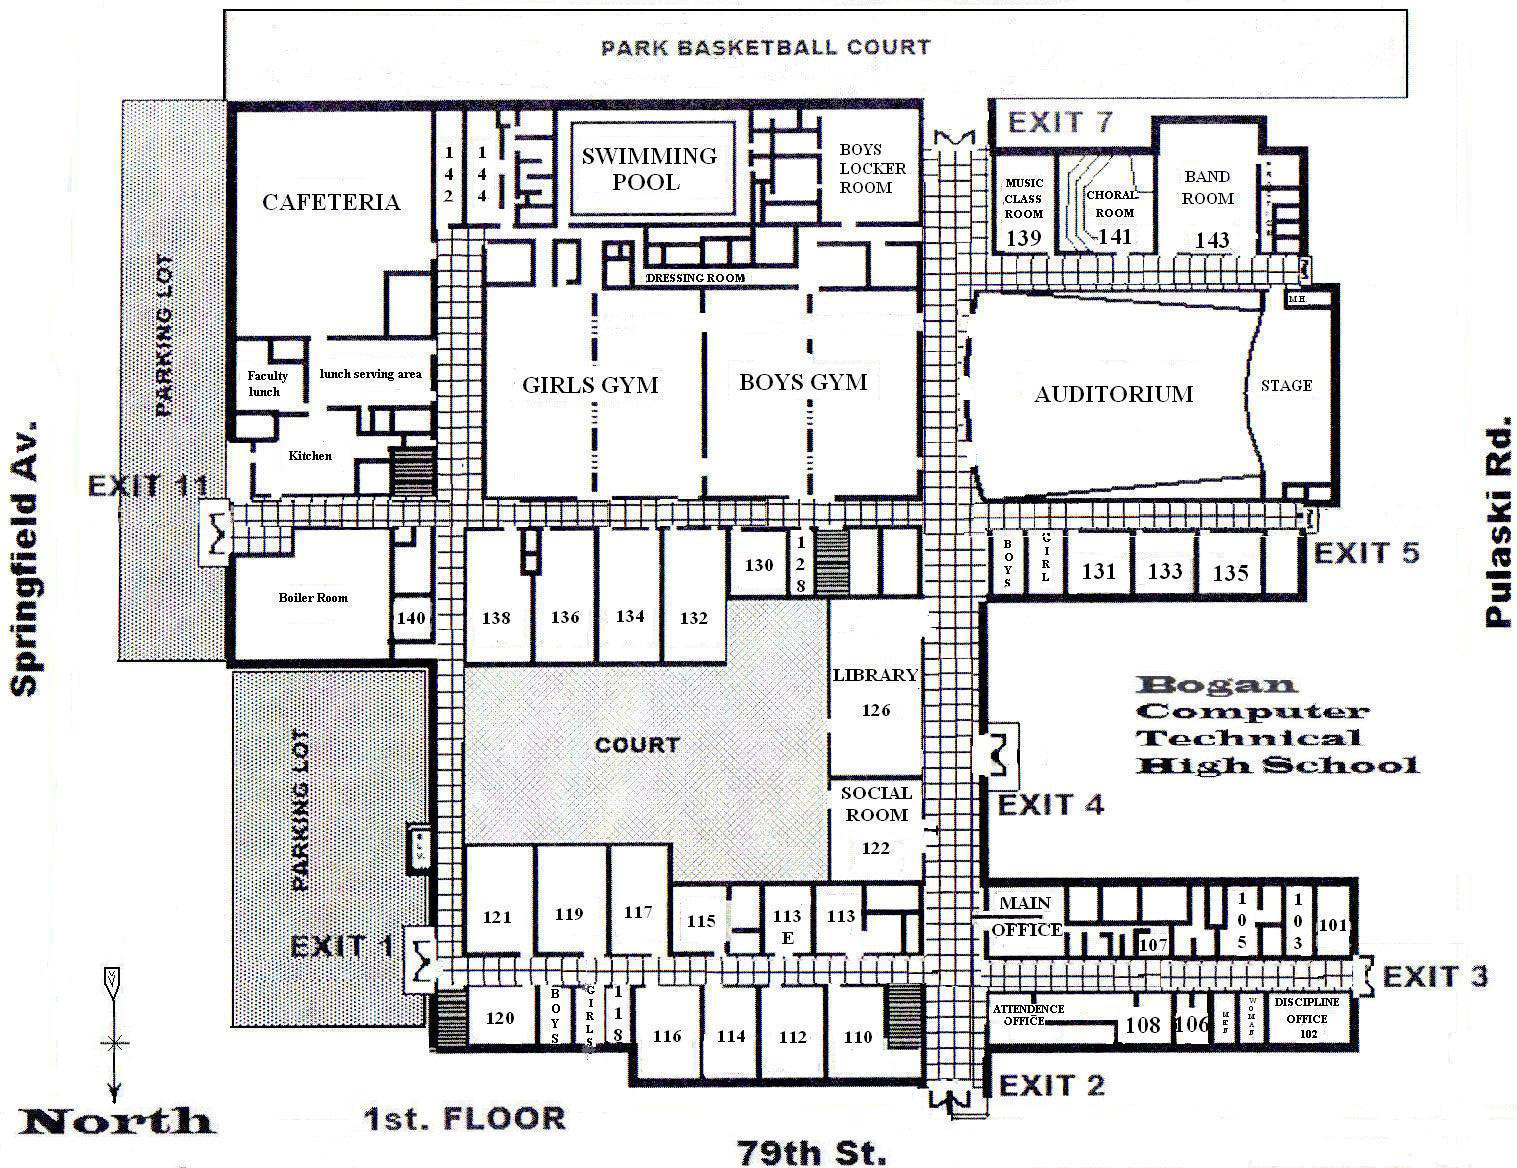 Building design - Wikipedia, the free encyclopedia